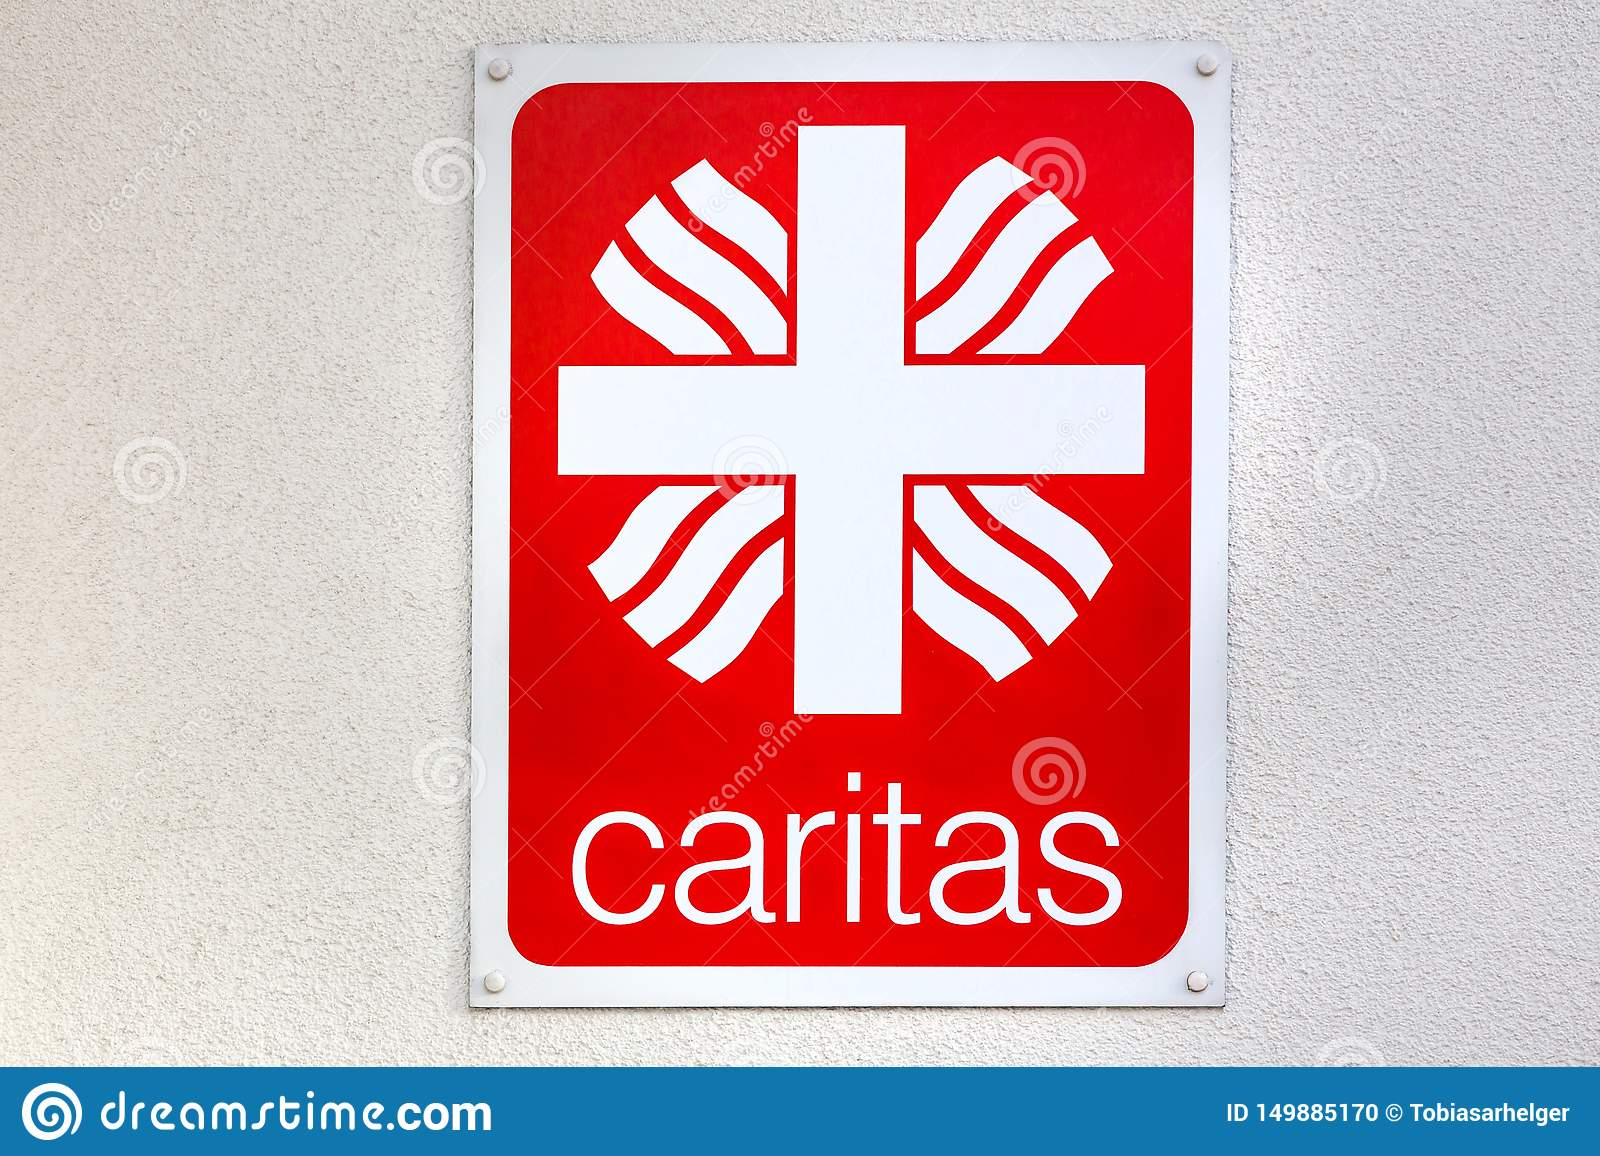 Caritas sign in aachen germany